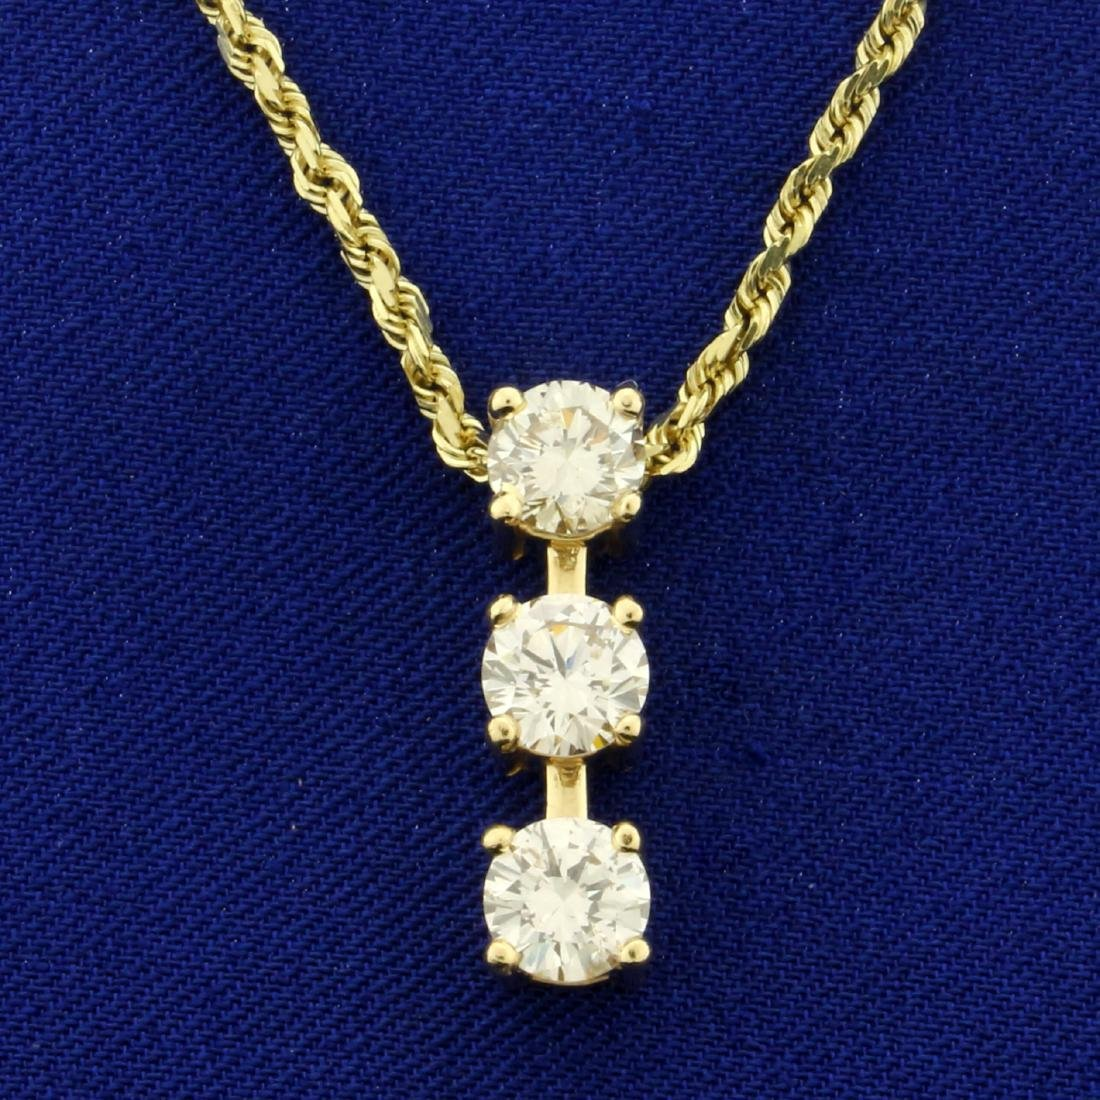 2.3ct TW 3 Stone Diamond Journey Pendant on Chain in